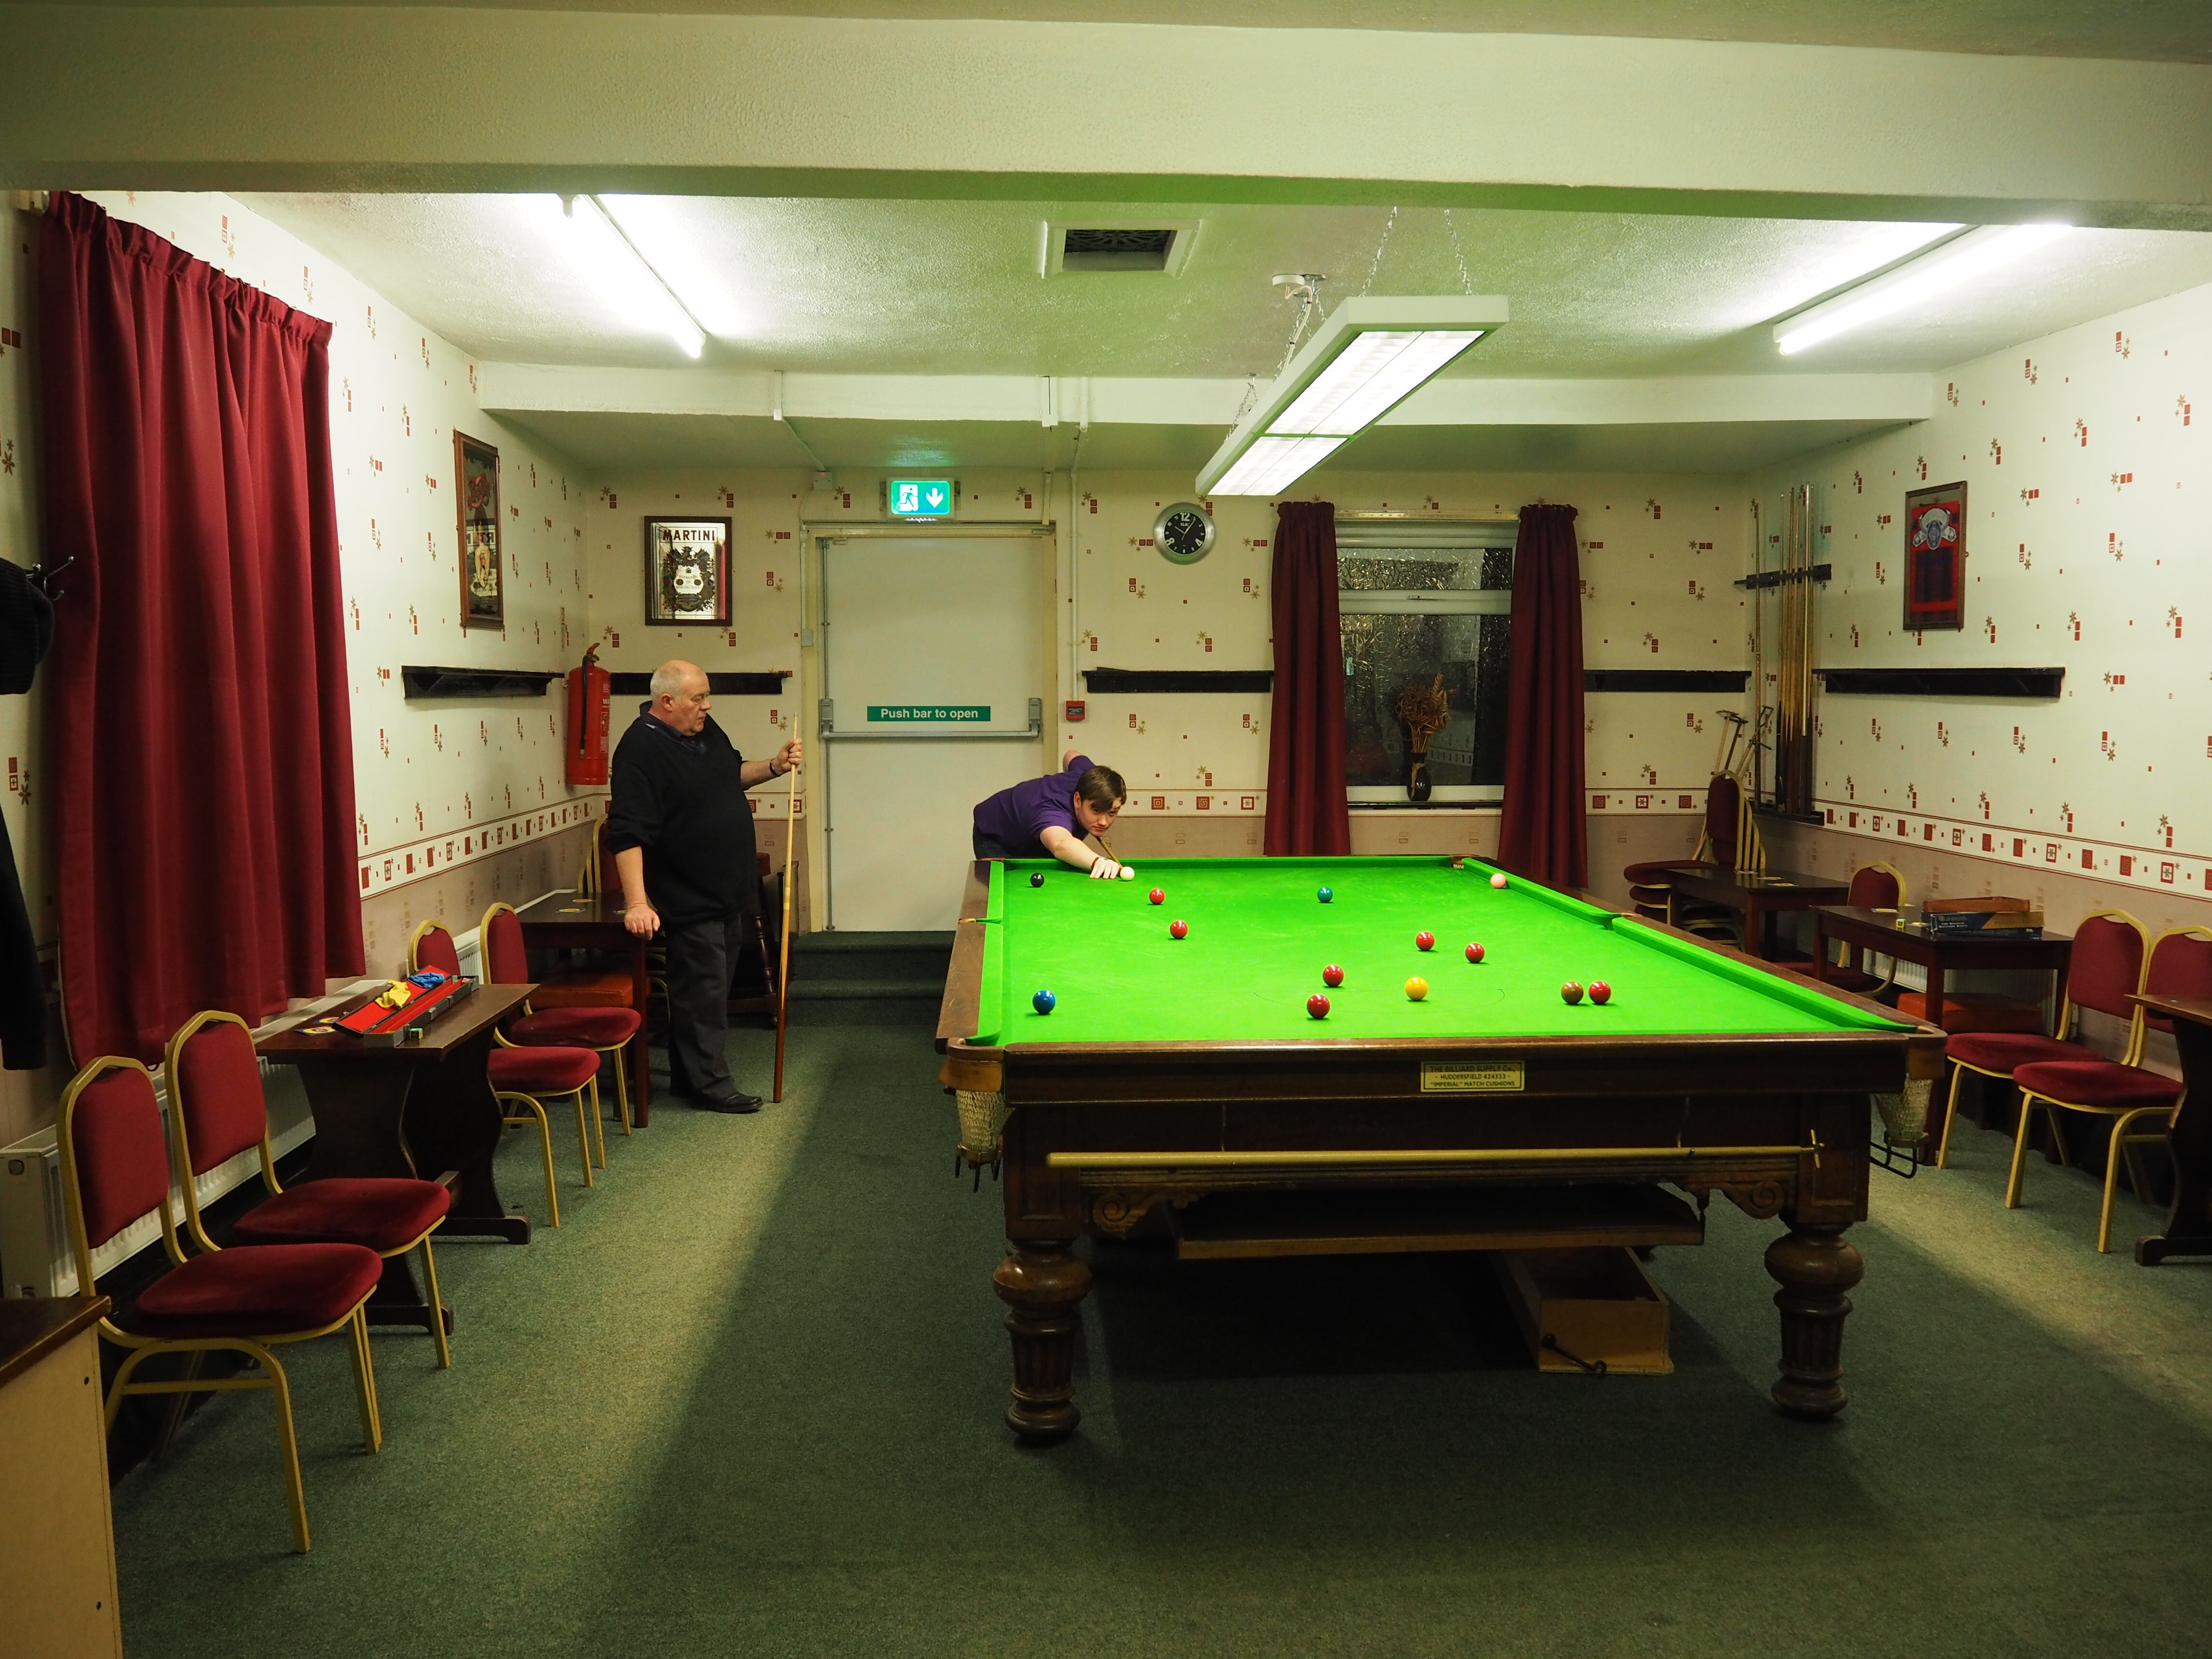 Graham and Simon try the refurbished snooker table